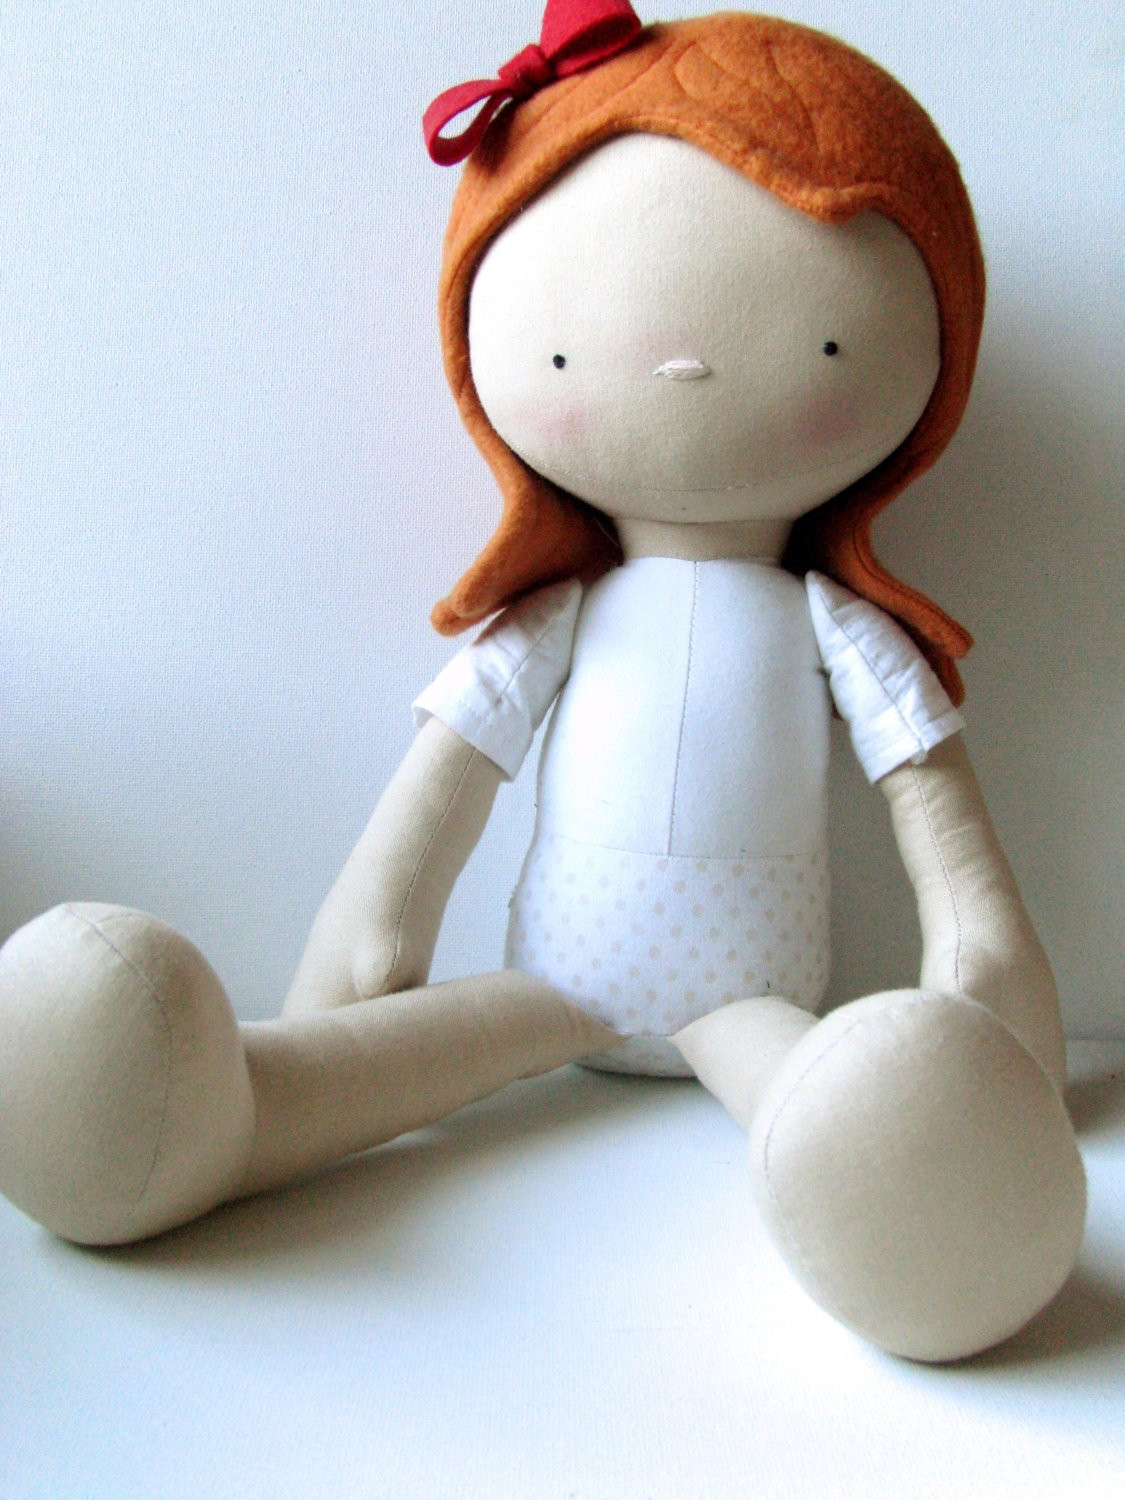 "Doll Patterns Awesome Delightful Doll Sewing Pattern Of Doll Patterns Inspirational 12"" Doll Crochet Pattern Mamacheemamachee"